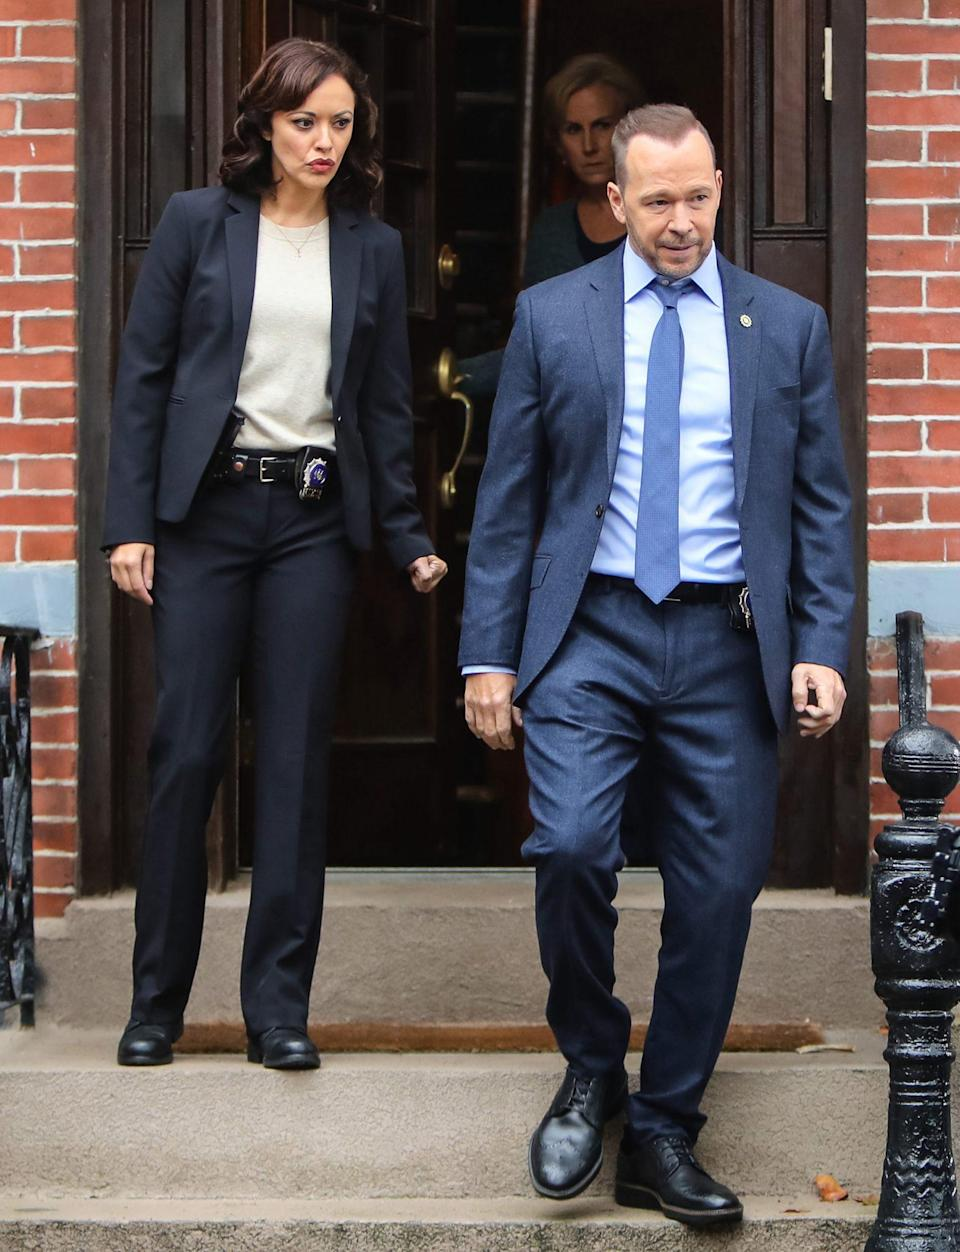 <p>Marisa Ramirez and Donnie Wahlberg are seen on the set of <i>Blue Bloods</i> on Monday in N.Y.C. </p>